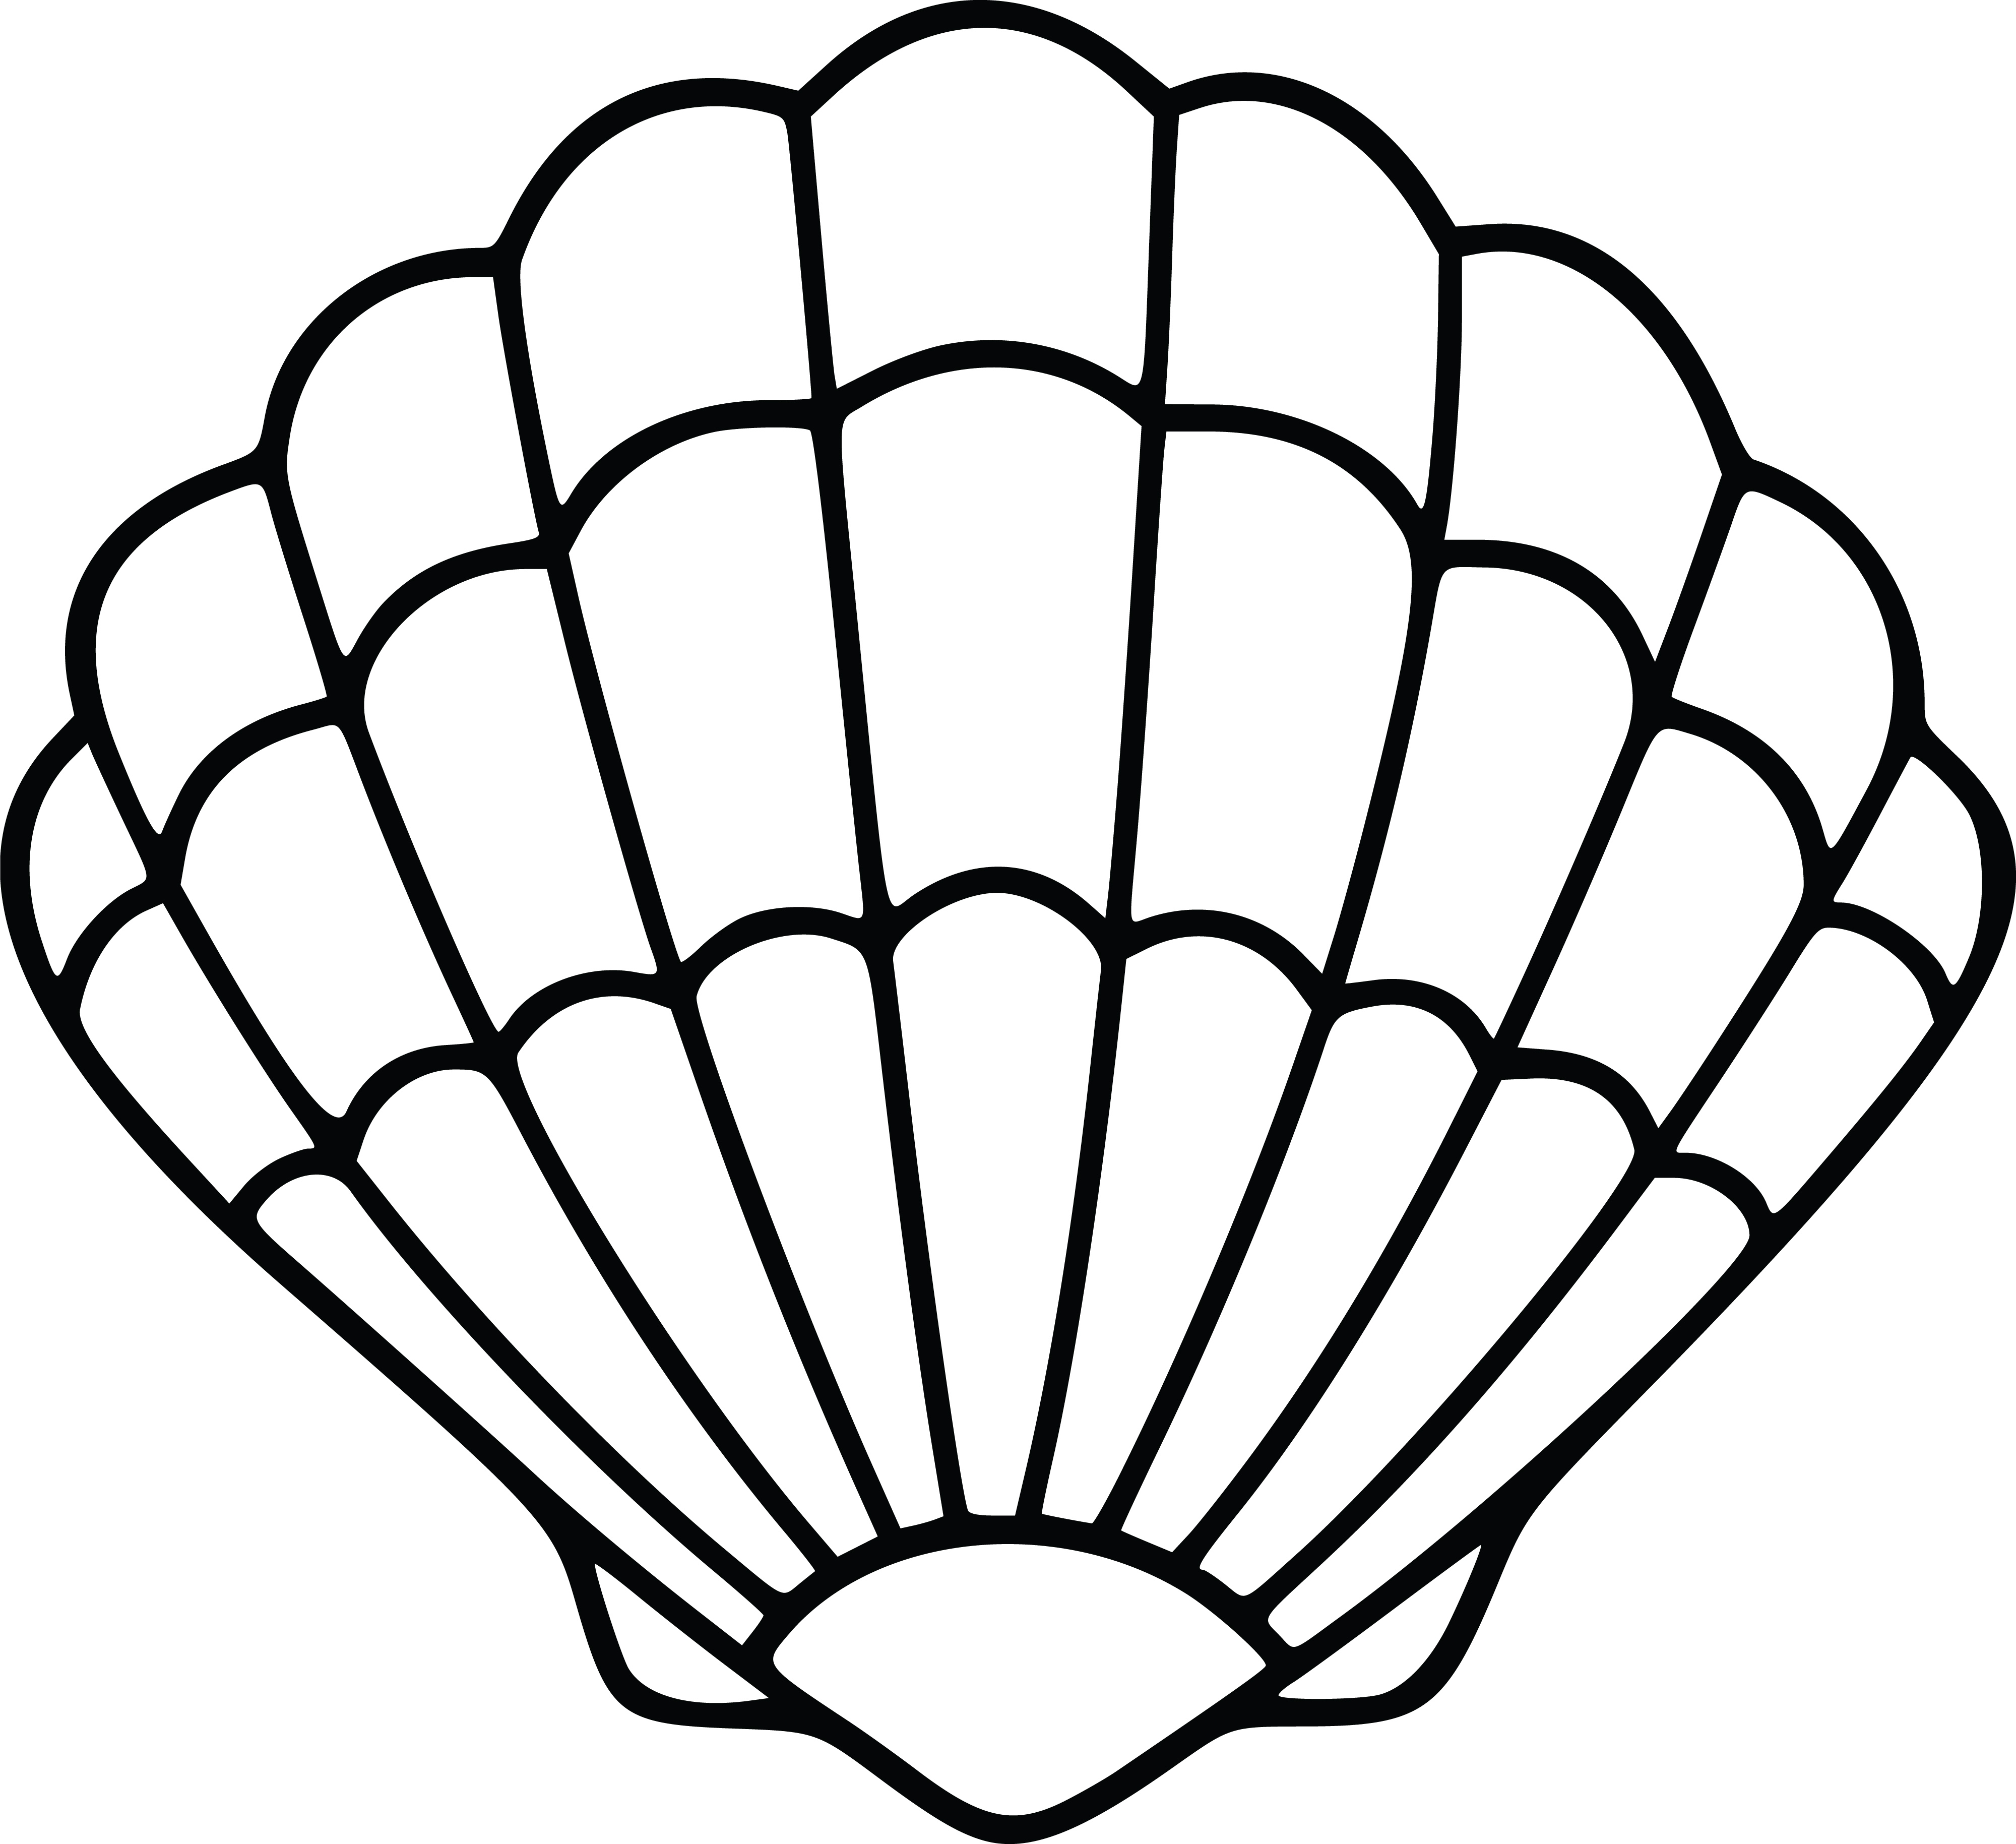 Shell Clipart & Clip Art Images #32169.